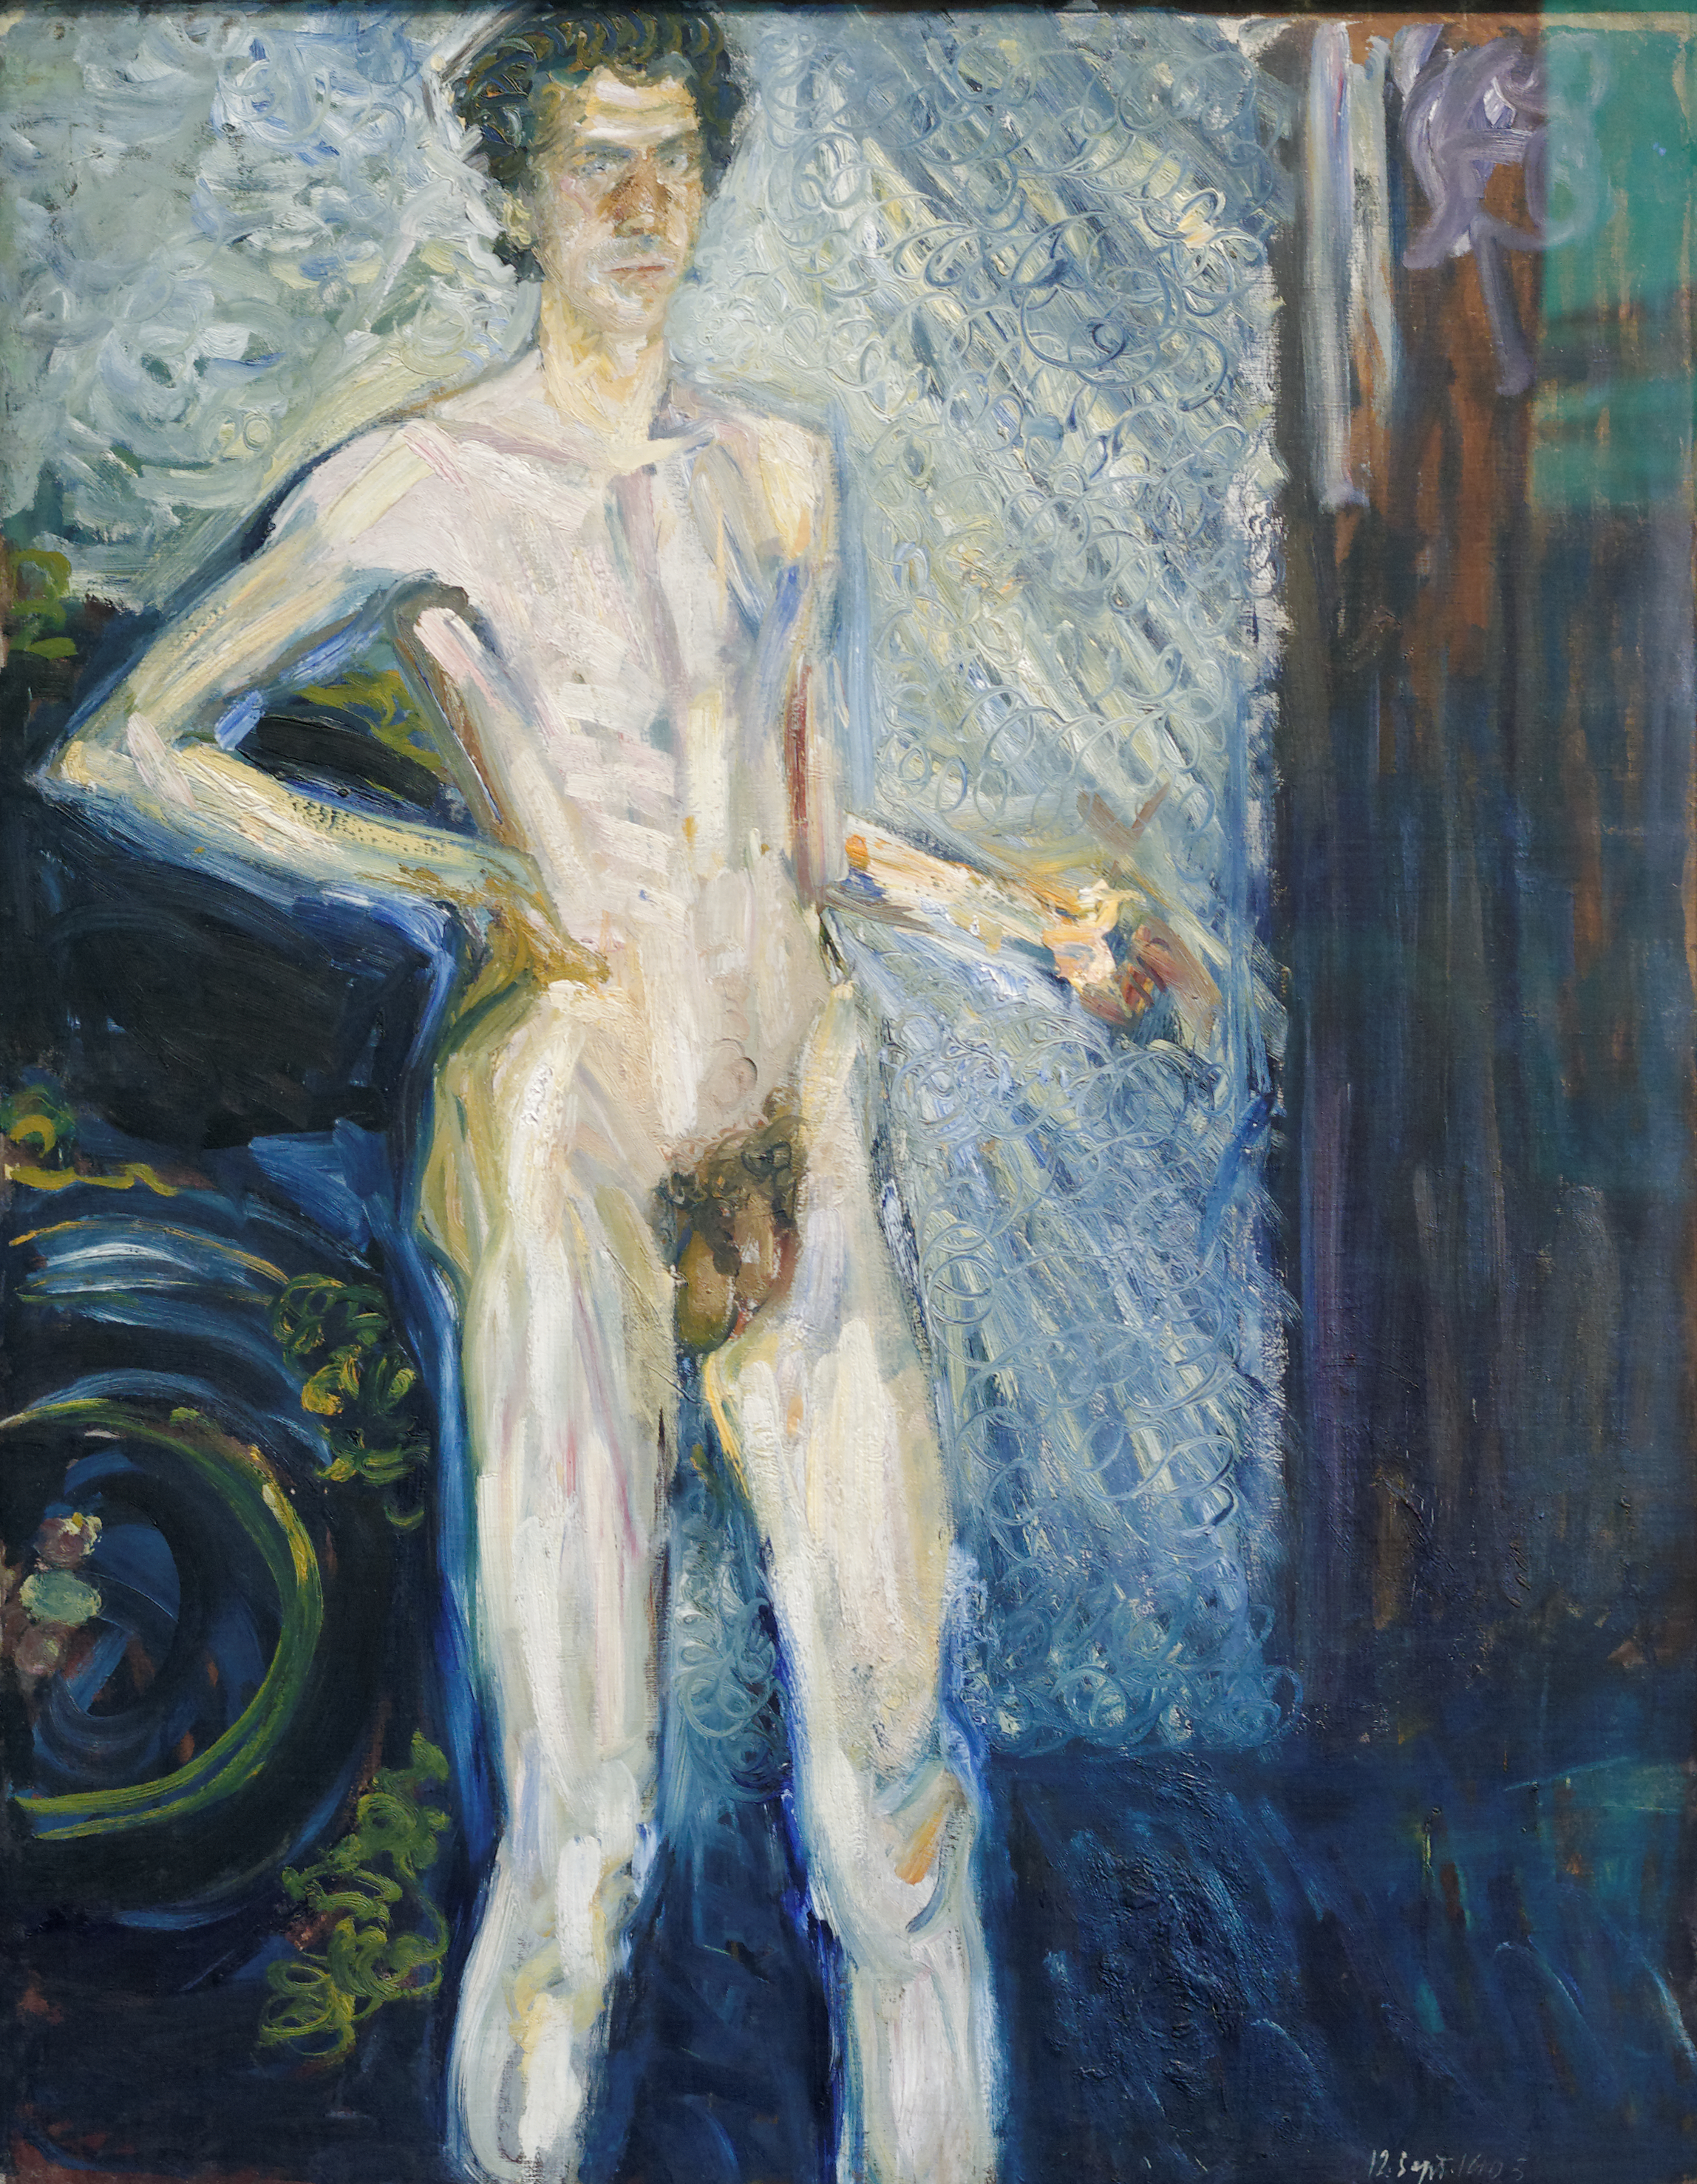 Nude self portrait by Richard Gerstl, 1908 (Wikimedia Commons)